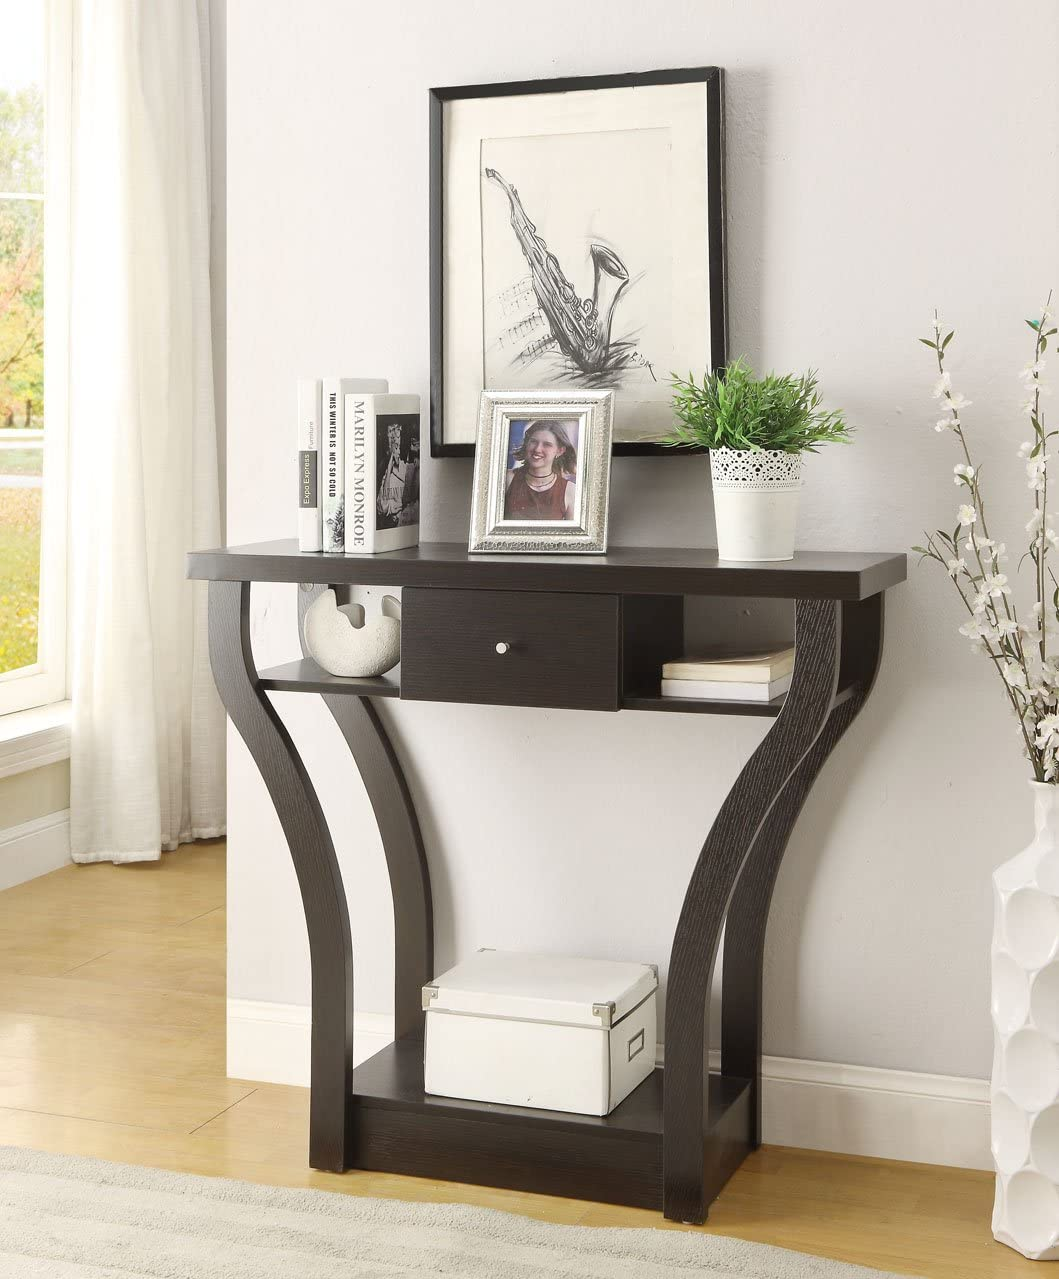 eHomeProducts Console Sofa Entry with Shelf Drawer Brown